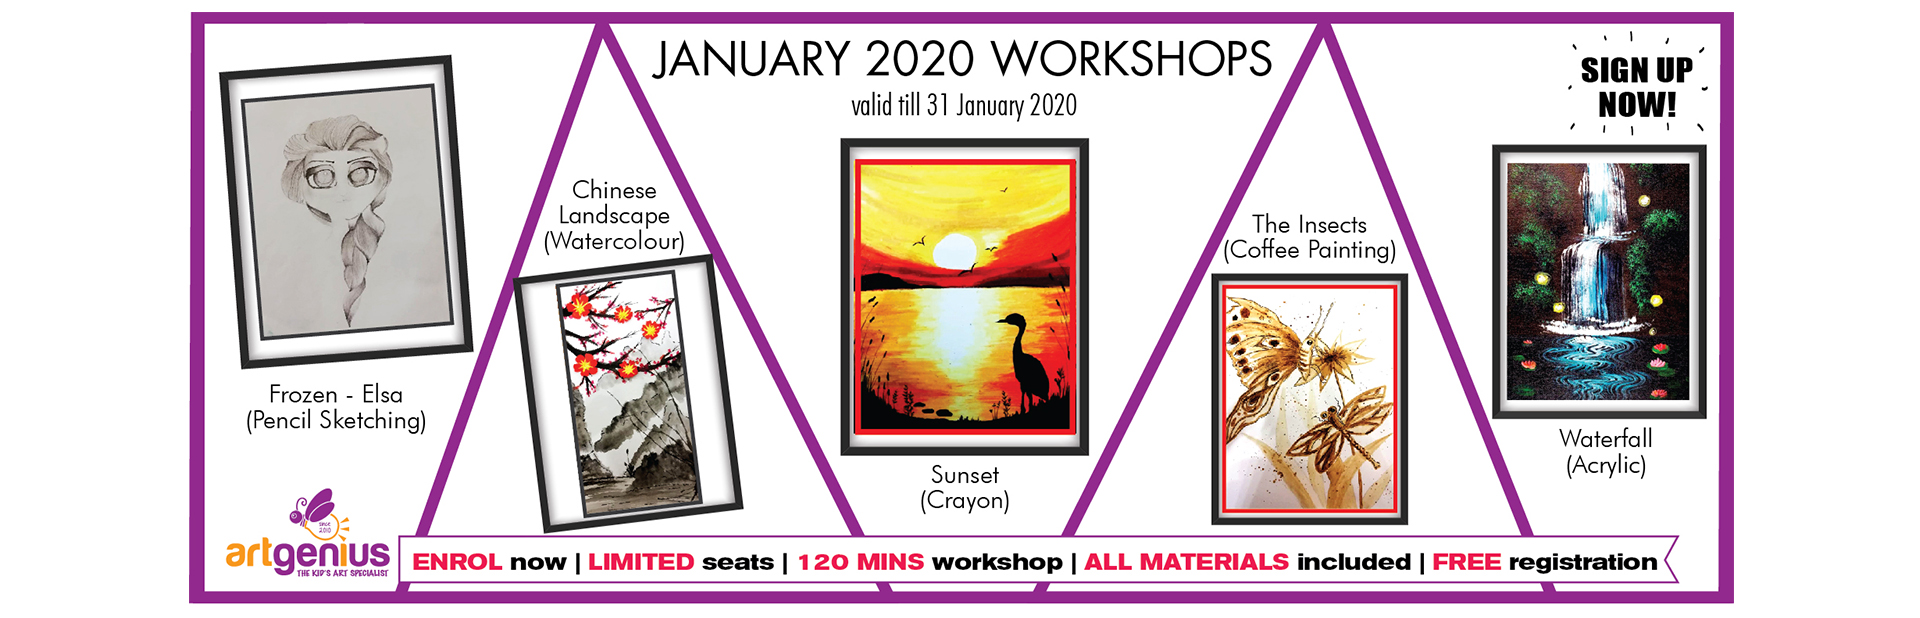 January-2020-workshops-web-banner